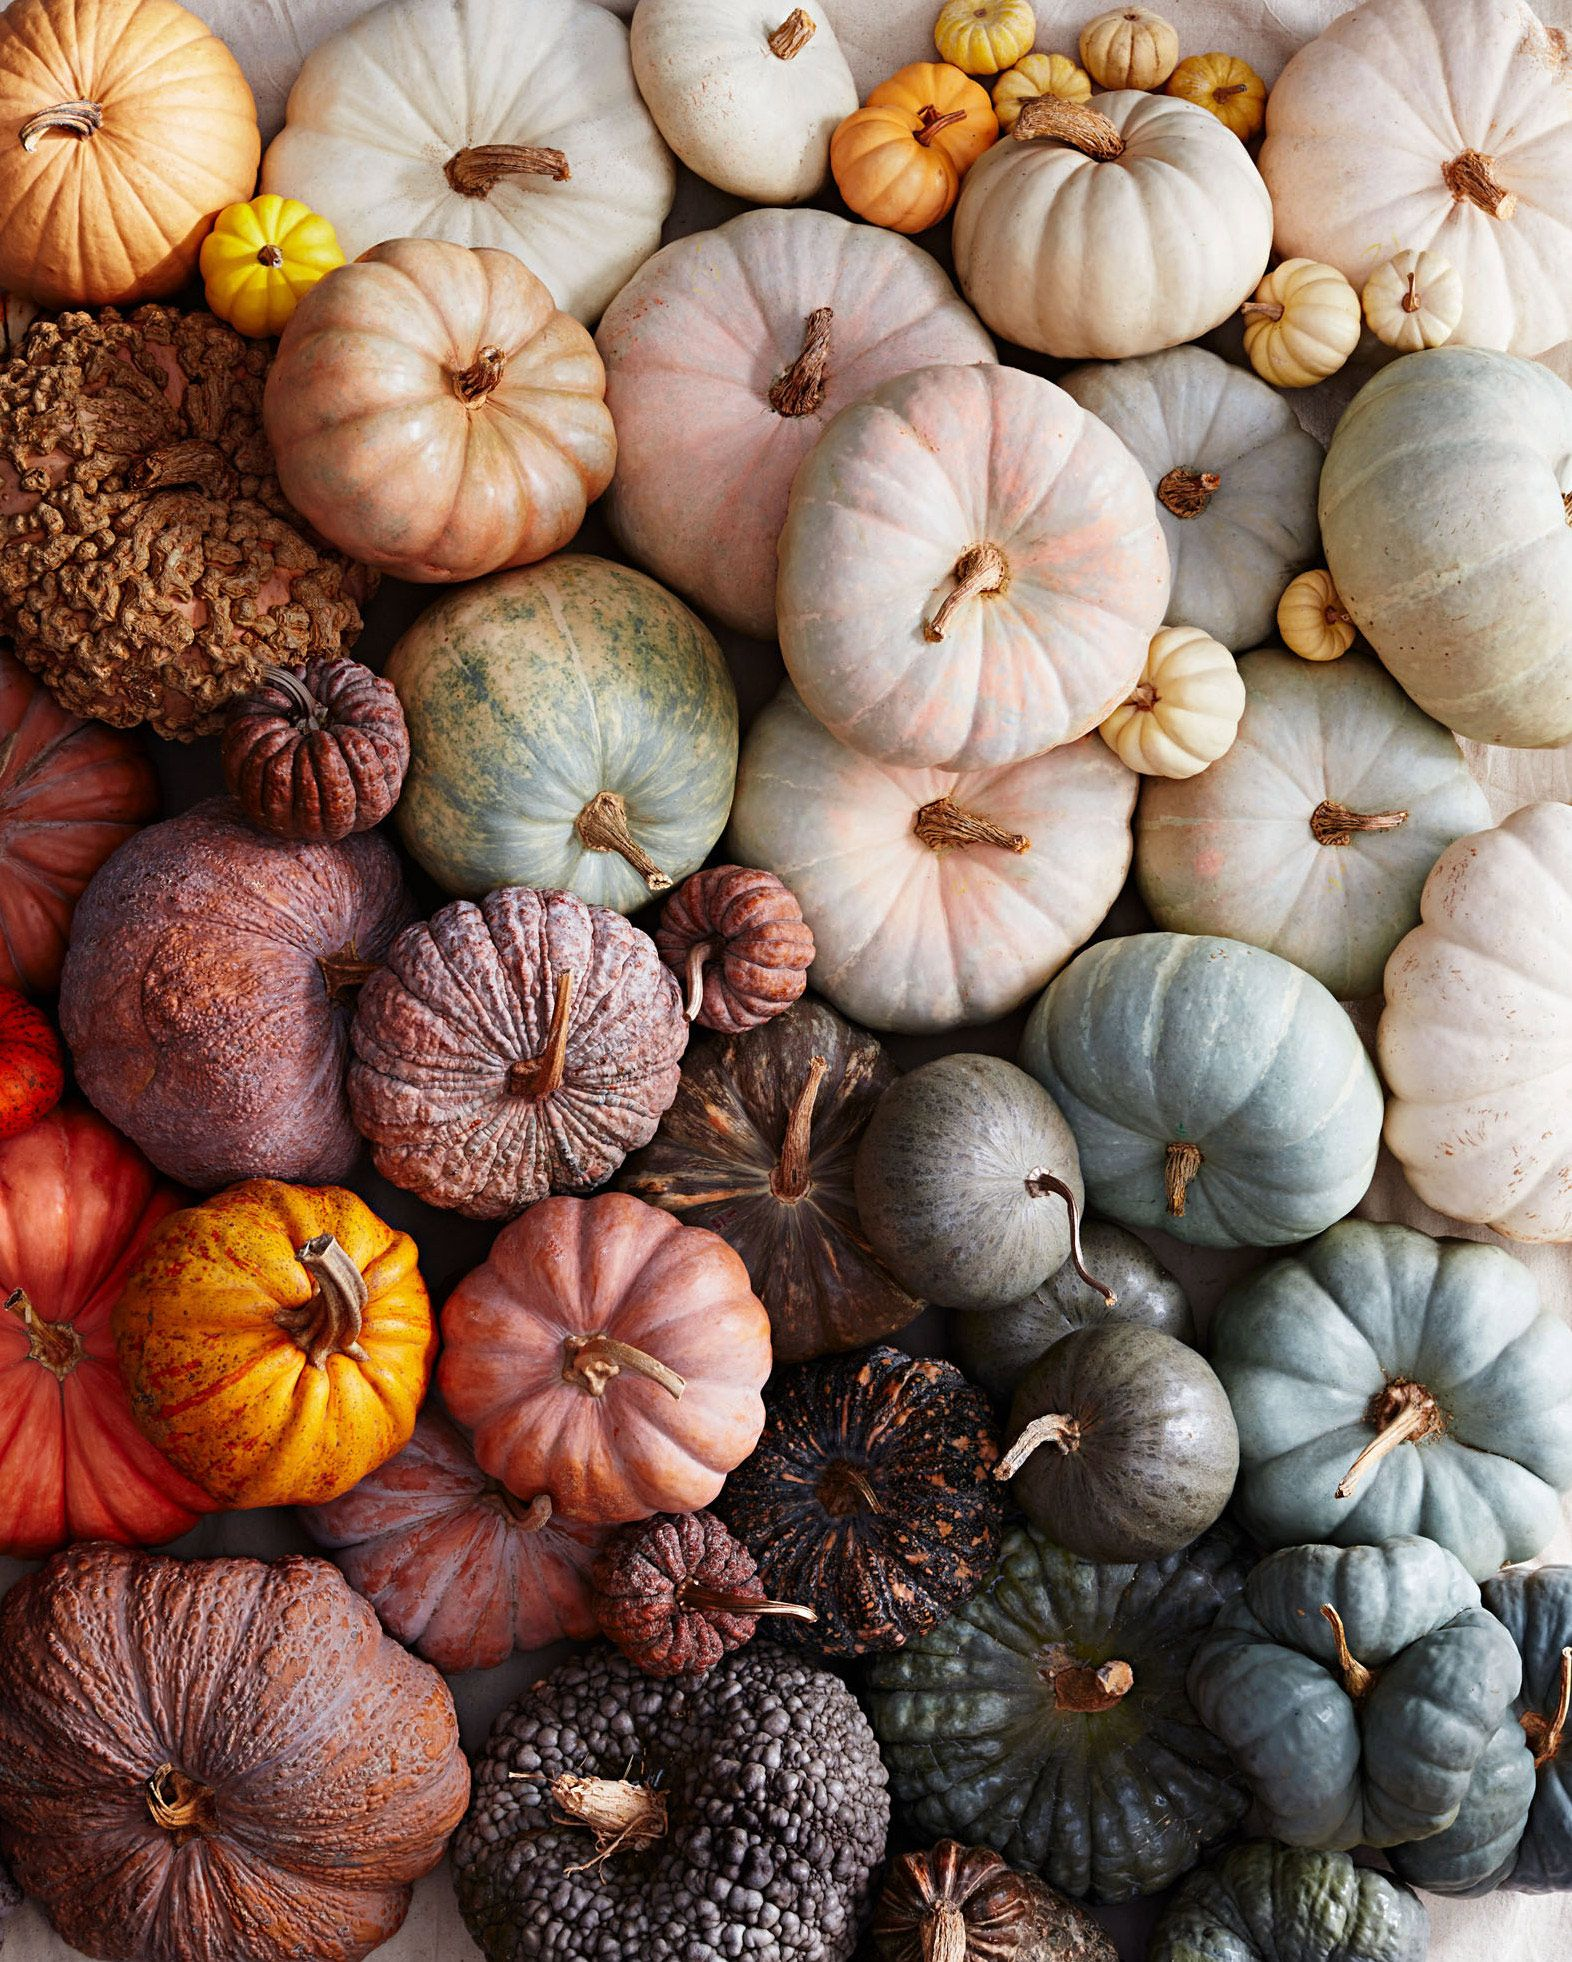 For aficionados, the beauty is in the bumps—and the curves, tonal colors, and unique marbled, mottled patterns. Learn how to identify these top heirlooms and hybrids. #marthastewart #pumpkins #falldecor #fall